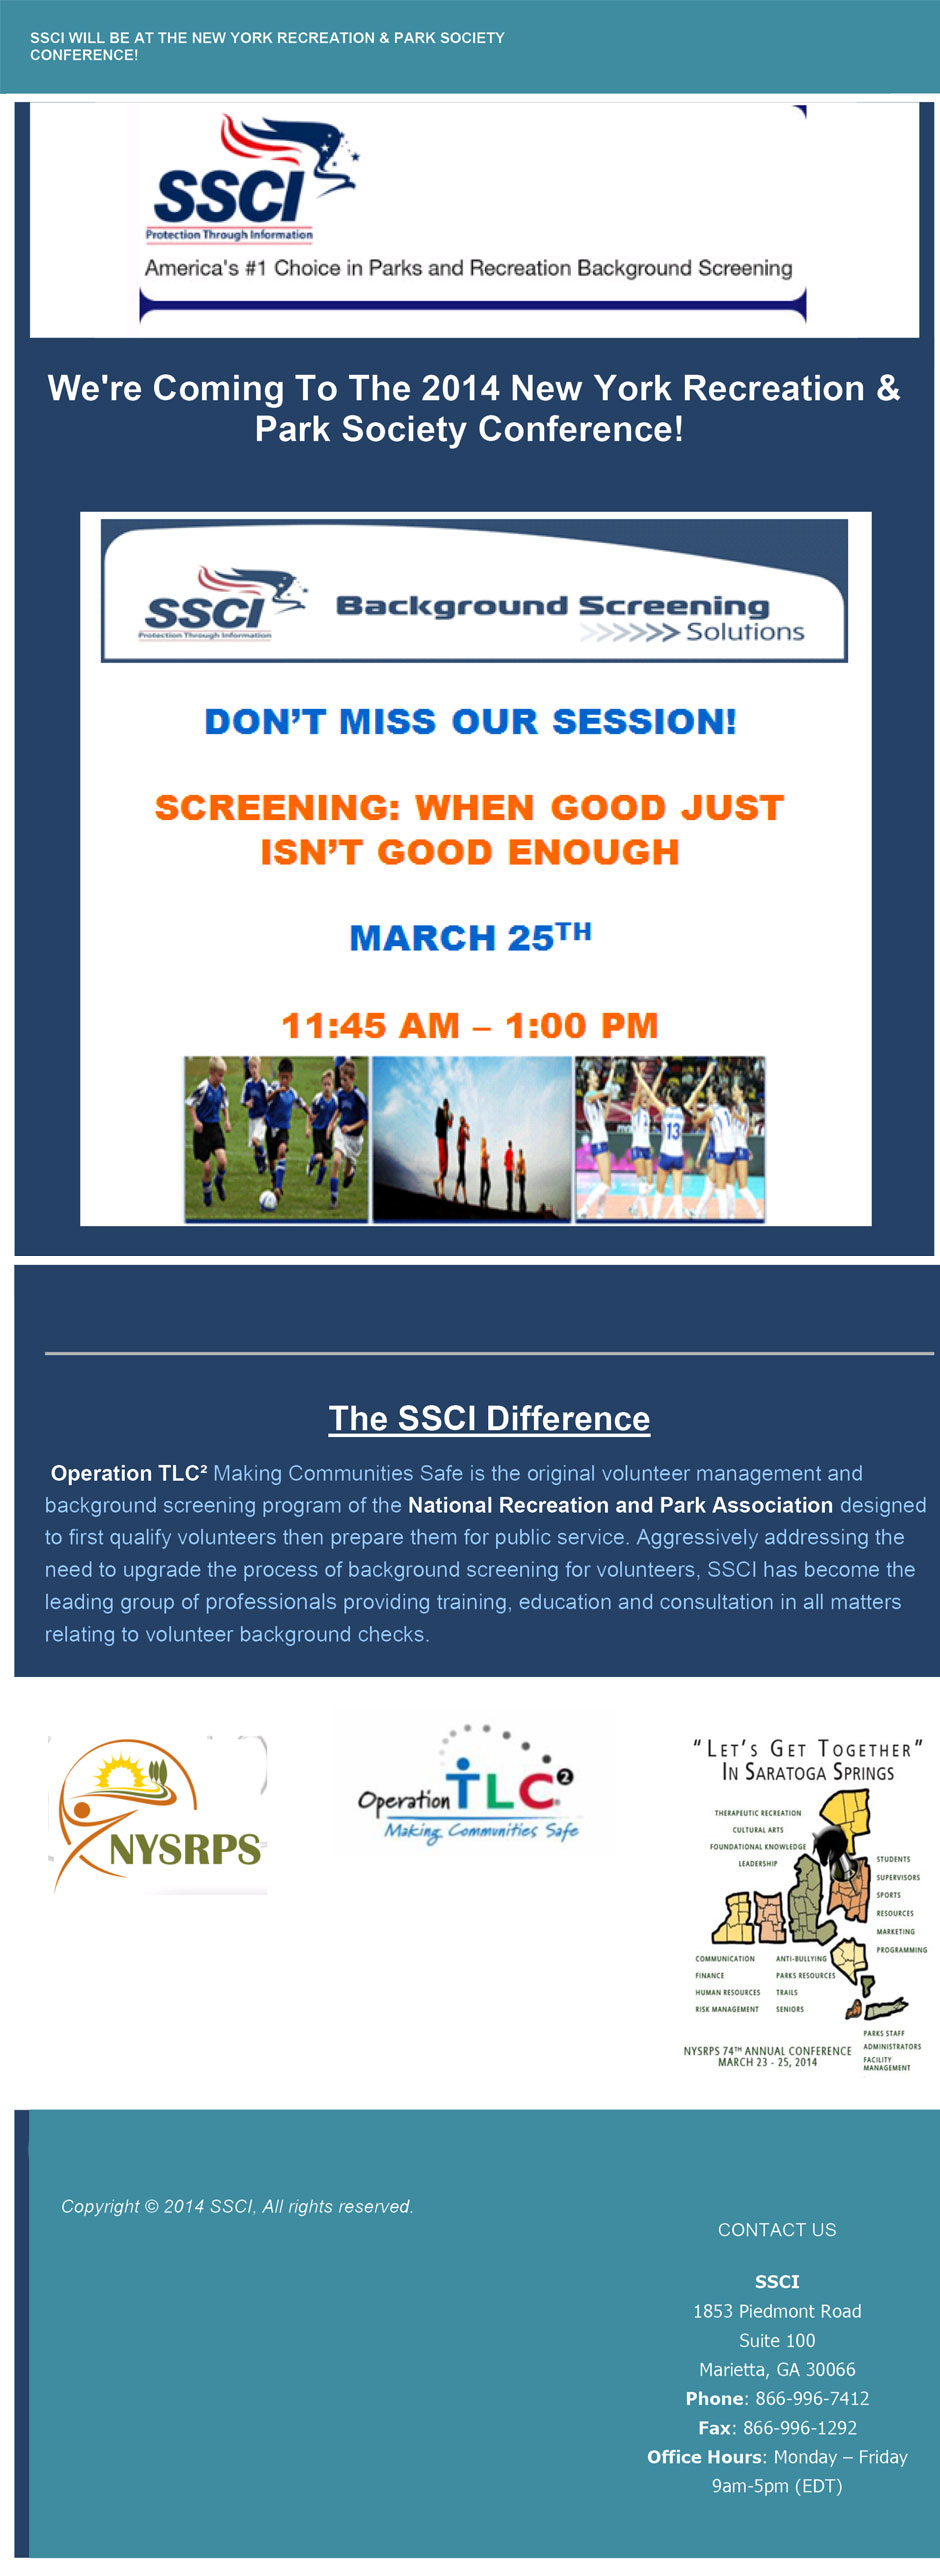 SSCI will be at the 2014 New York Recreation & Park Society Conference!